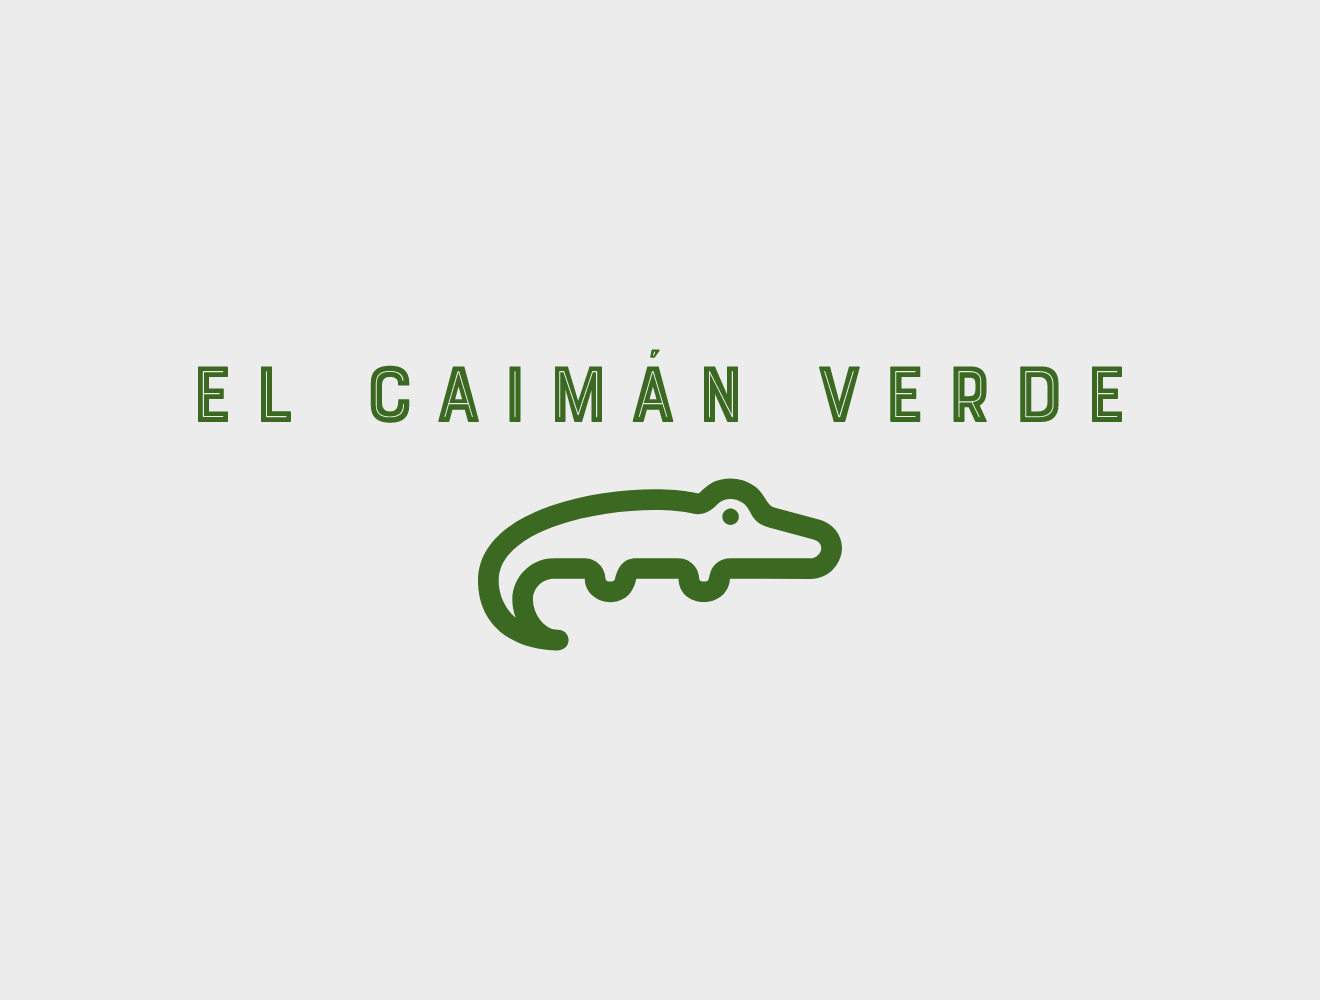 Logo with a green alligator and the name of the website